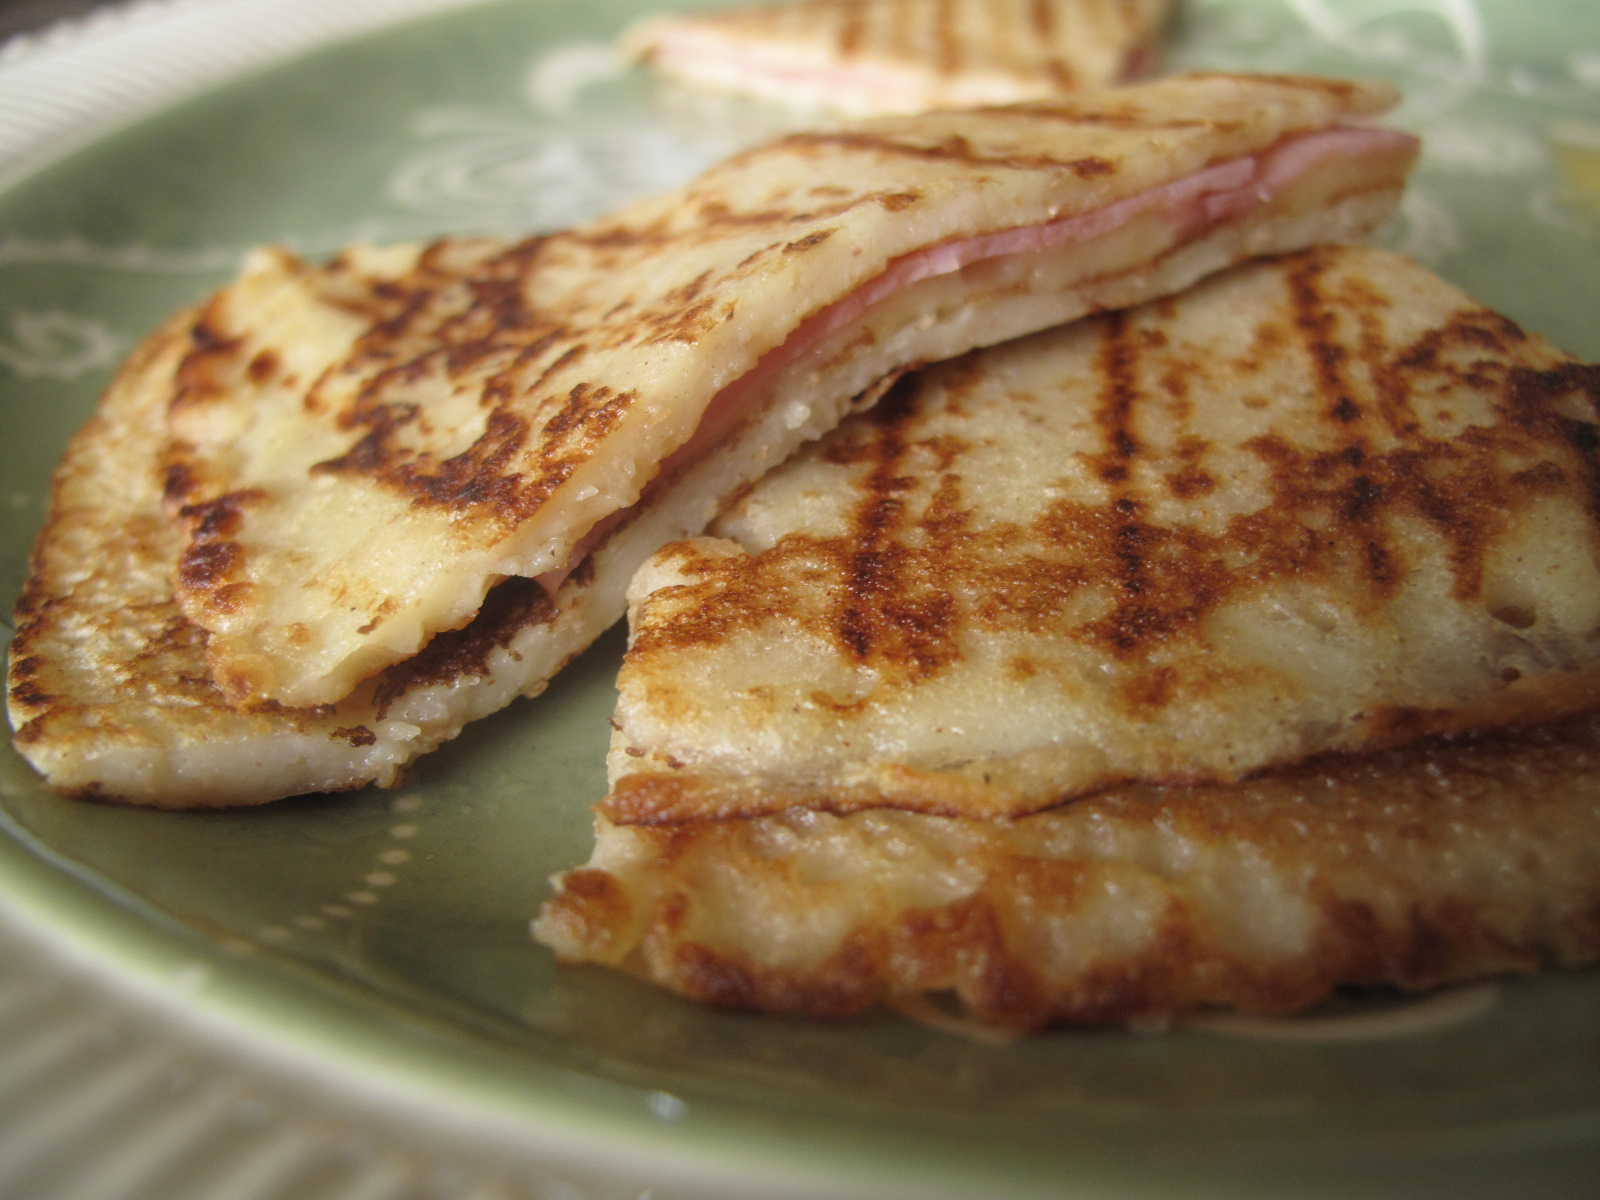 Cheese and Ham Quesadilla